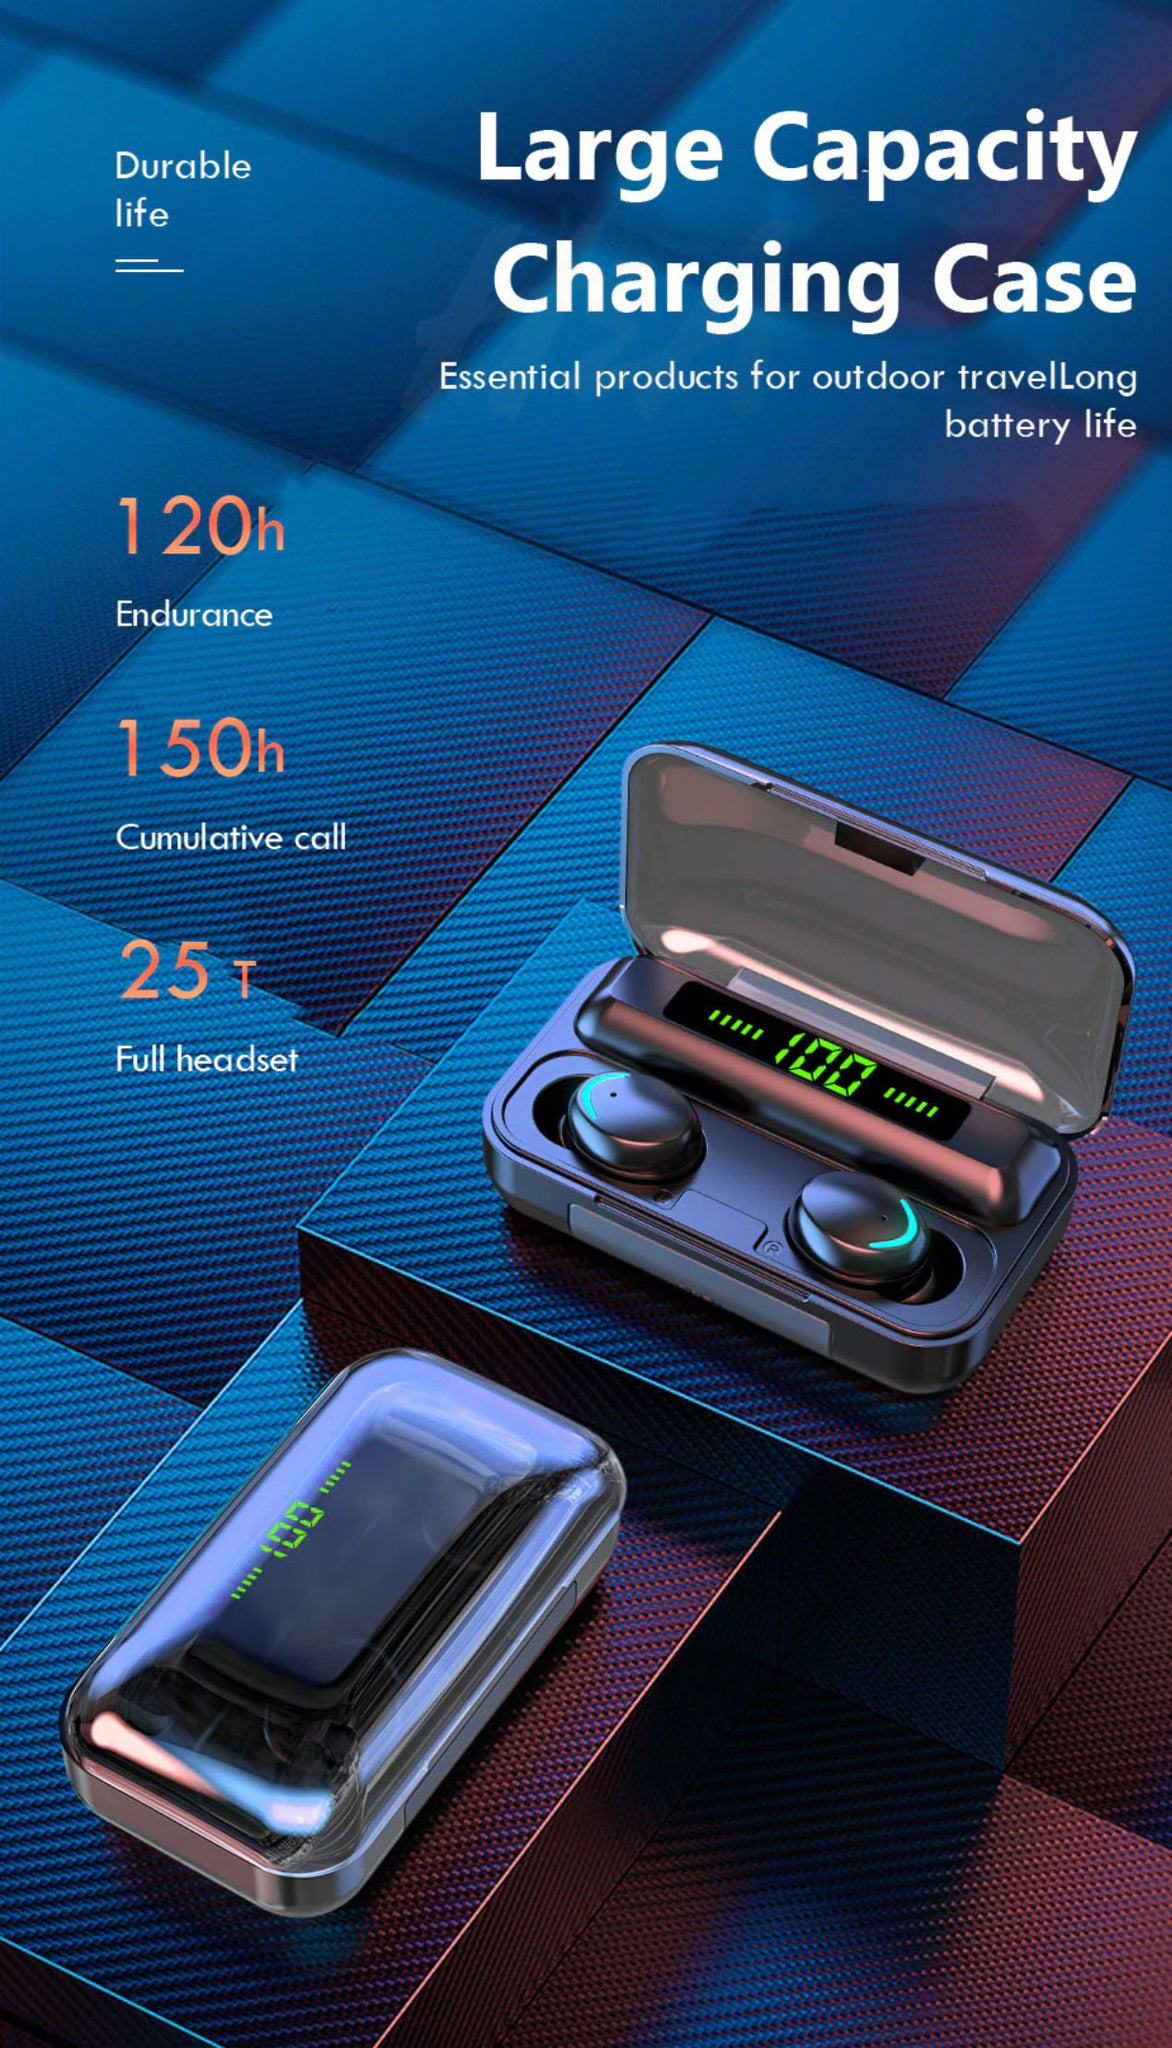 H&A TWS-F9-8 Wireless Sport Bluetooth Earphones Large Capacity Charging Case